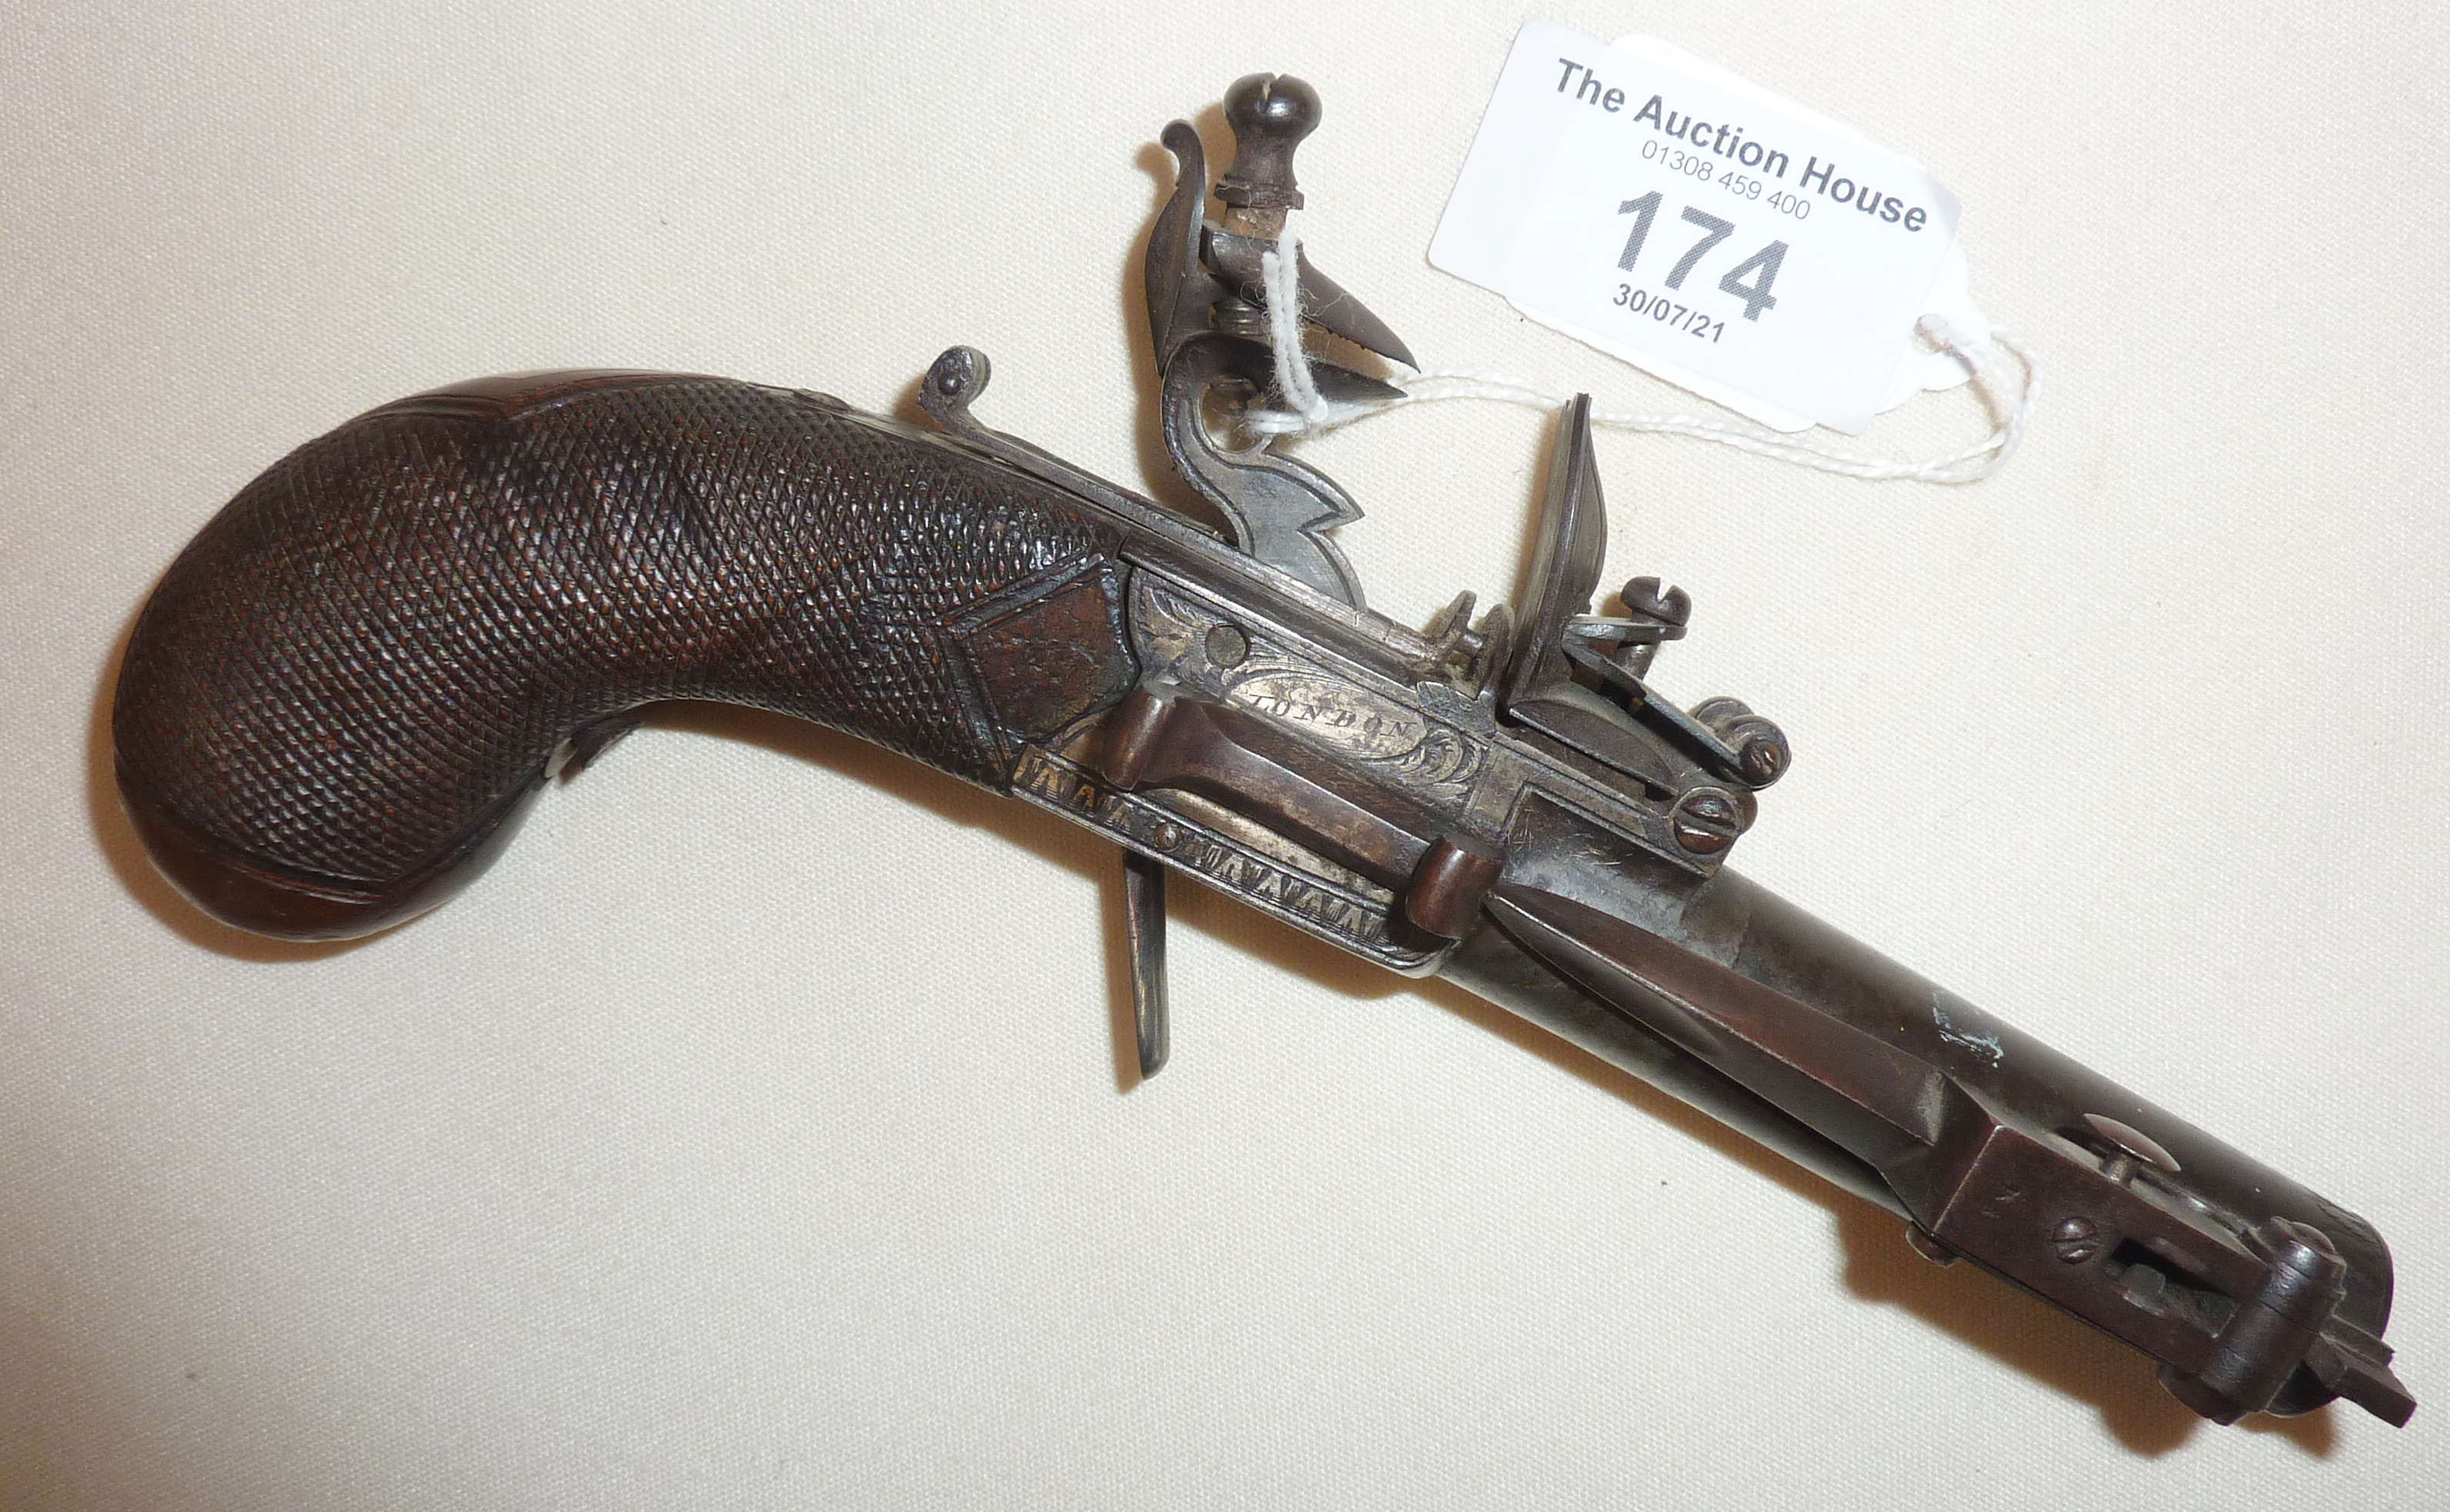 Rare early 19th c. boxlock pocket dagger pistol by H. Hadley of London - Image 2 of 2